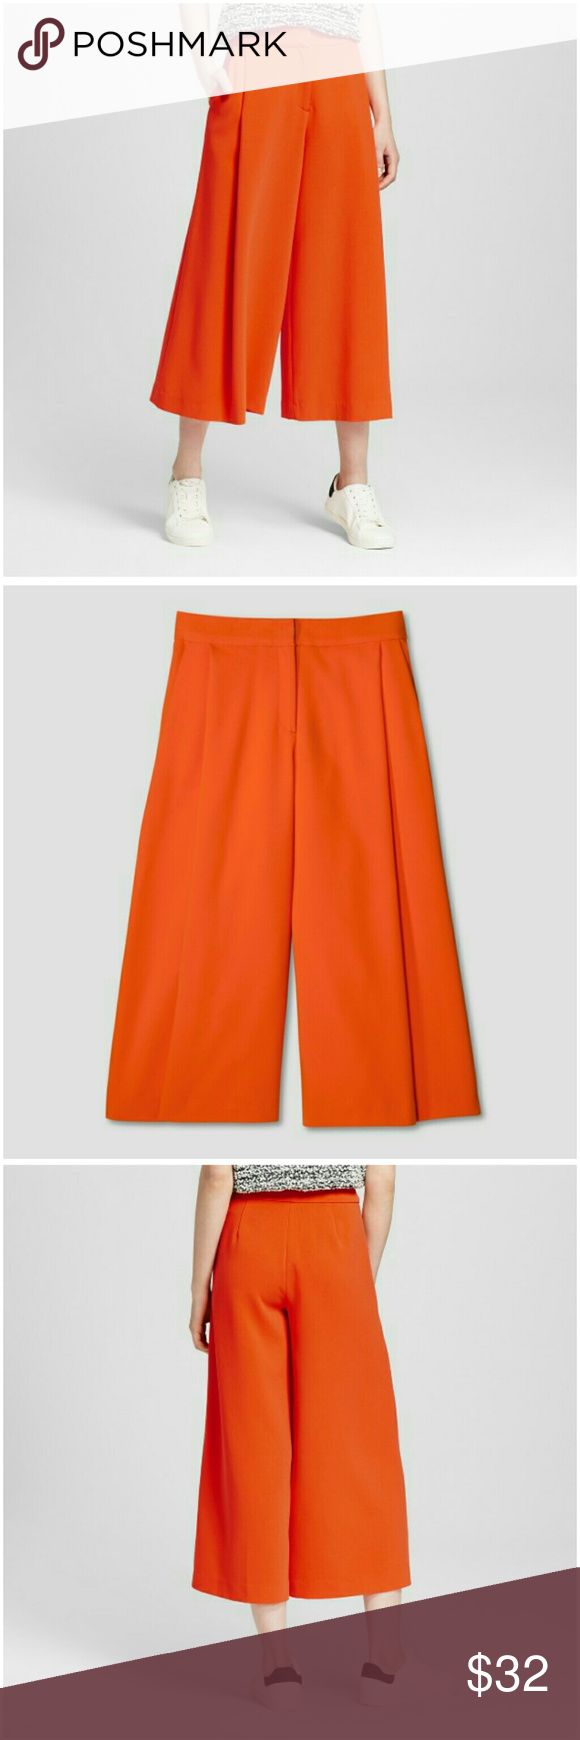 """NEW Victoria Beckham Orange Pleated Culotte SZ 10 Victoria Beckham for Target Orange Pleated Culotte Women's Size 10  Take a Risk -- Trade in your Midi for Culottes! So Chic & Sophisticated!  DETAILS: Wide Leg Trouser w/Pockets.  MATERIAL: 63% Polyester, 33% Rayon, 4% Spandex  - Super Soft!  SIZE: 10 Waist: 30.5"""" Hip: 40"""" Classic/Mid Rise  Smoke Free Home!  Bundle & Save! Victoria Beckham Pants Ankle & Cropped"""